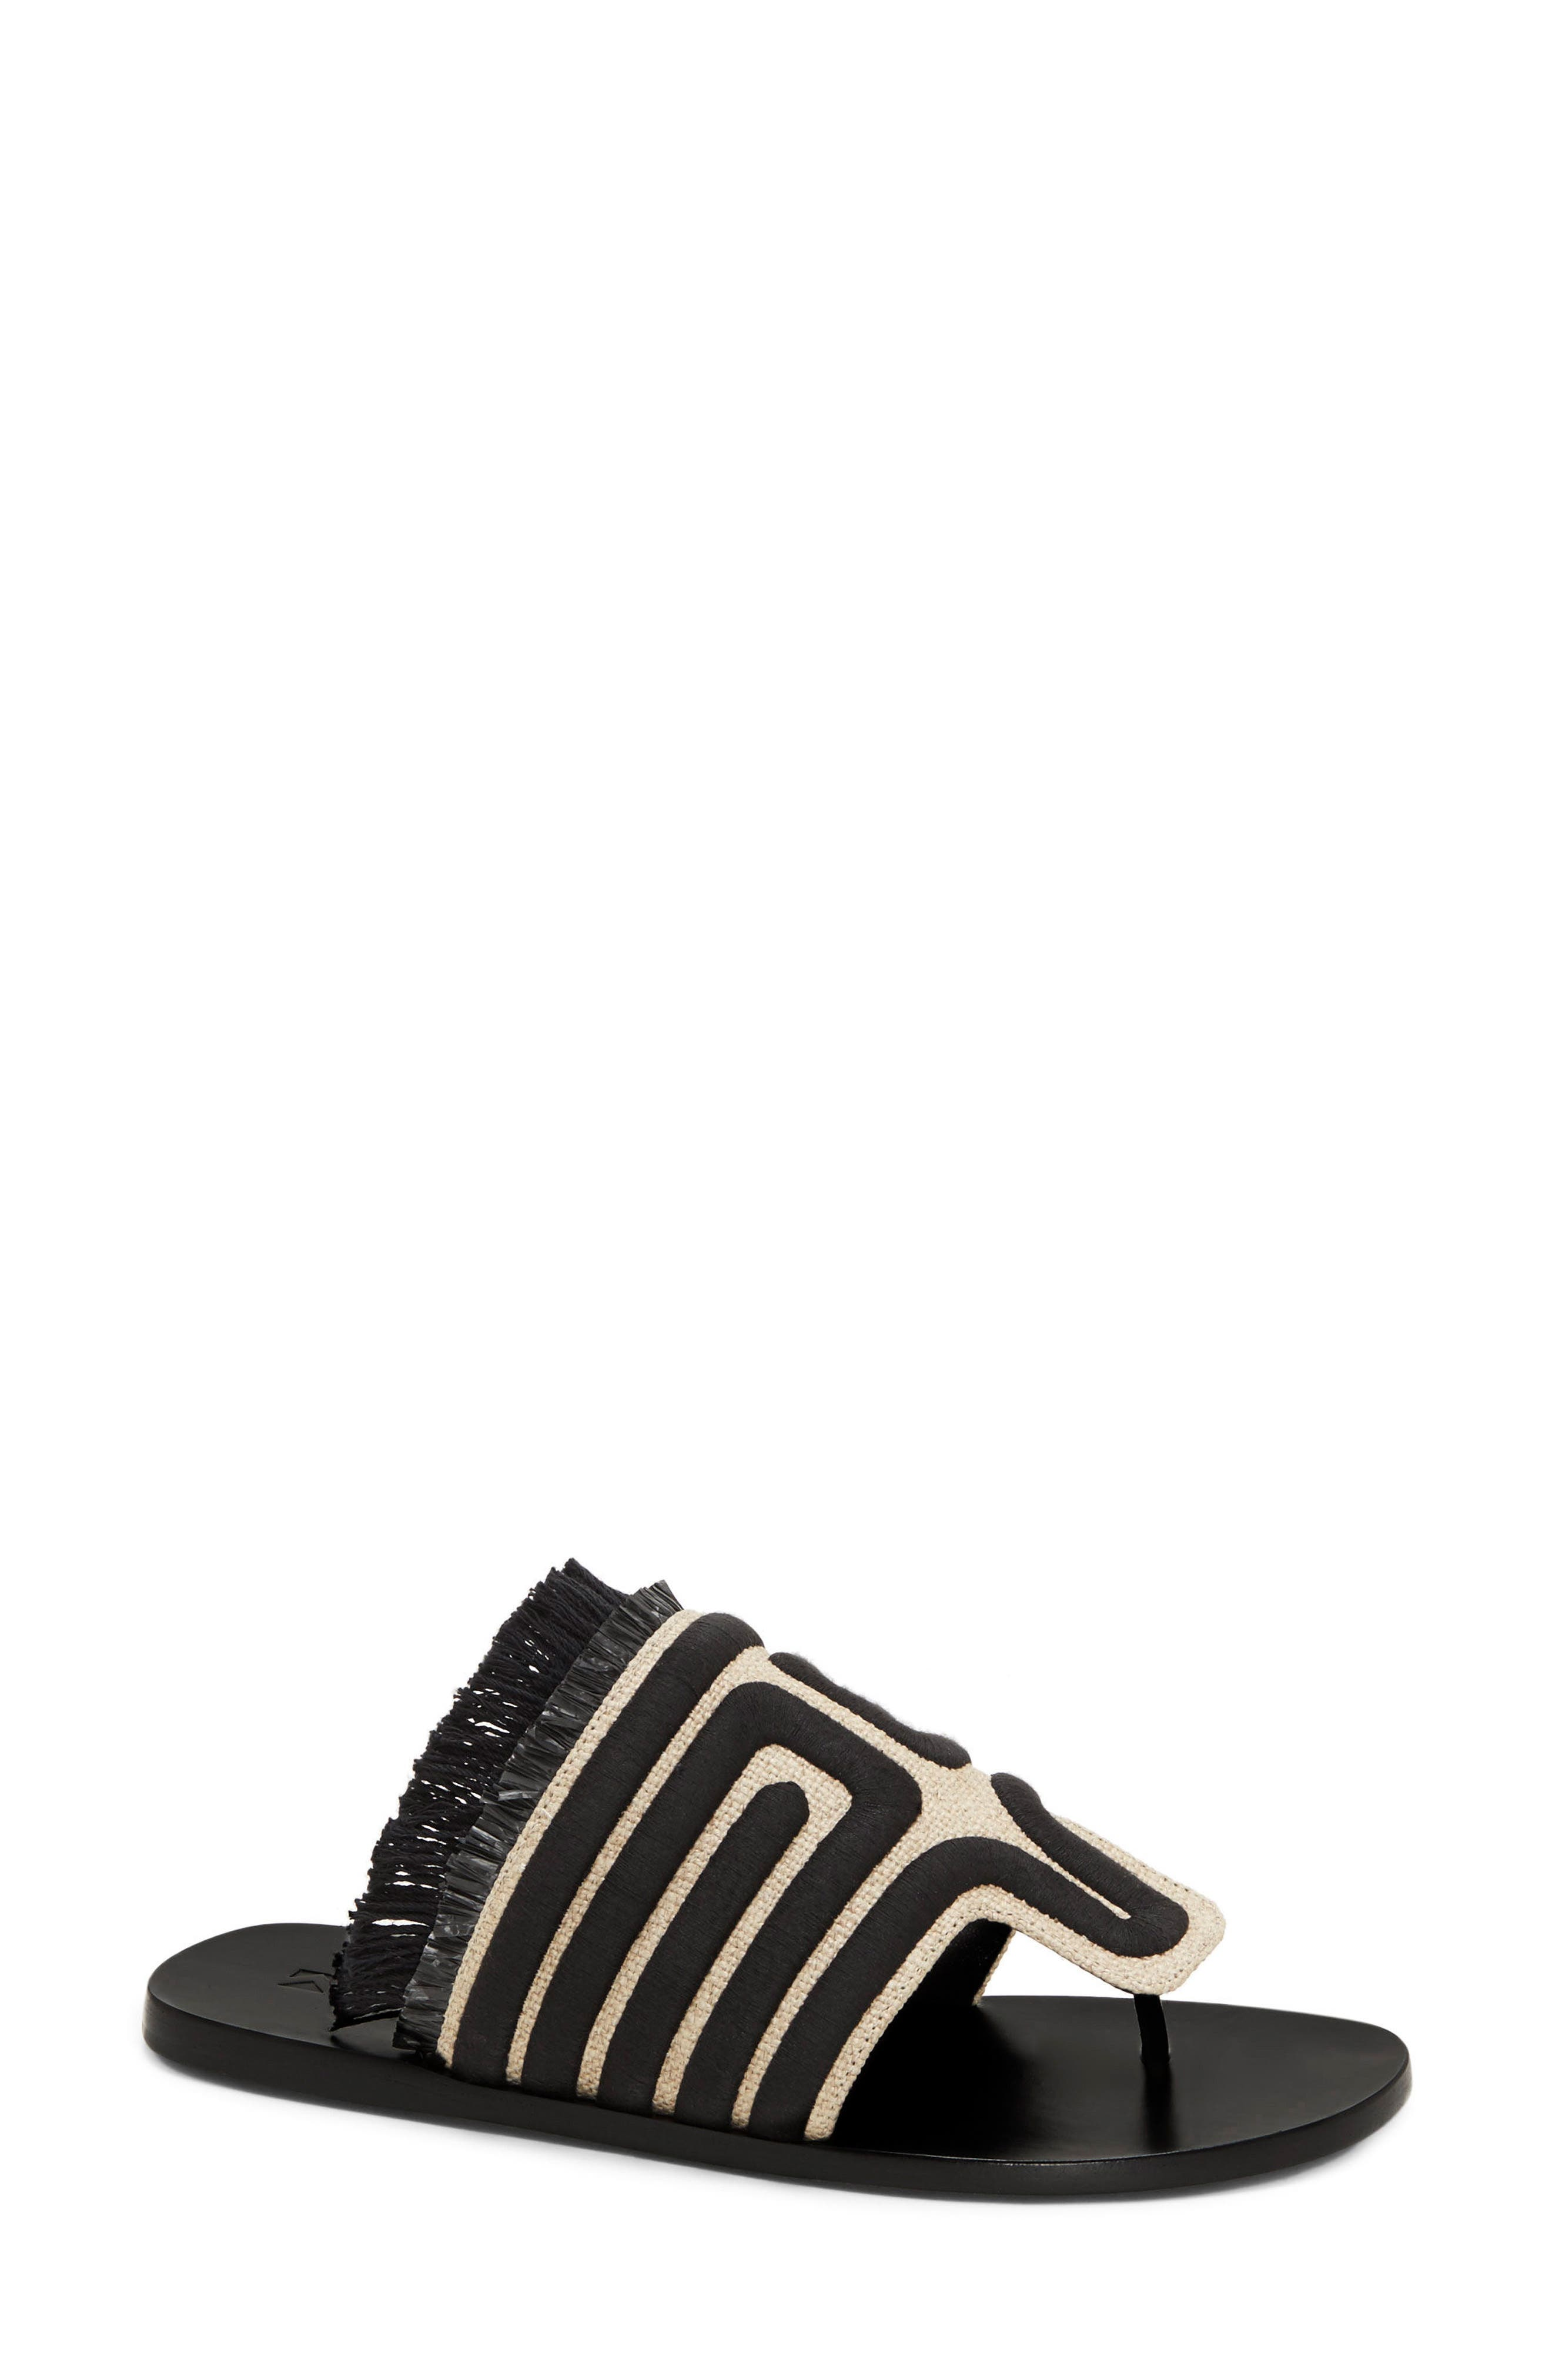 Lucara Embroidered Sandal,                         Main,                         color,